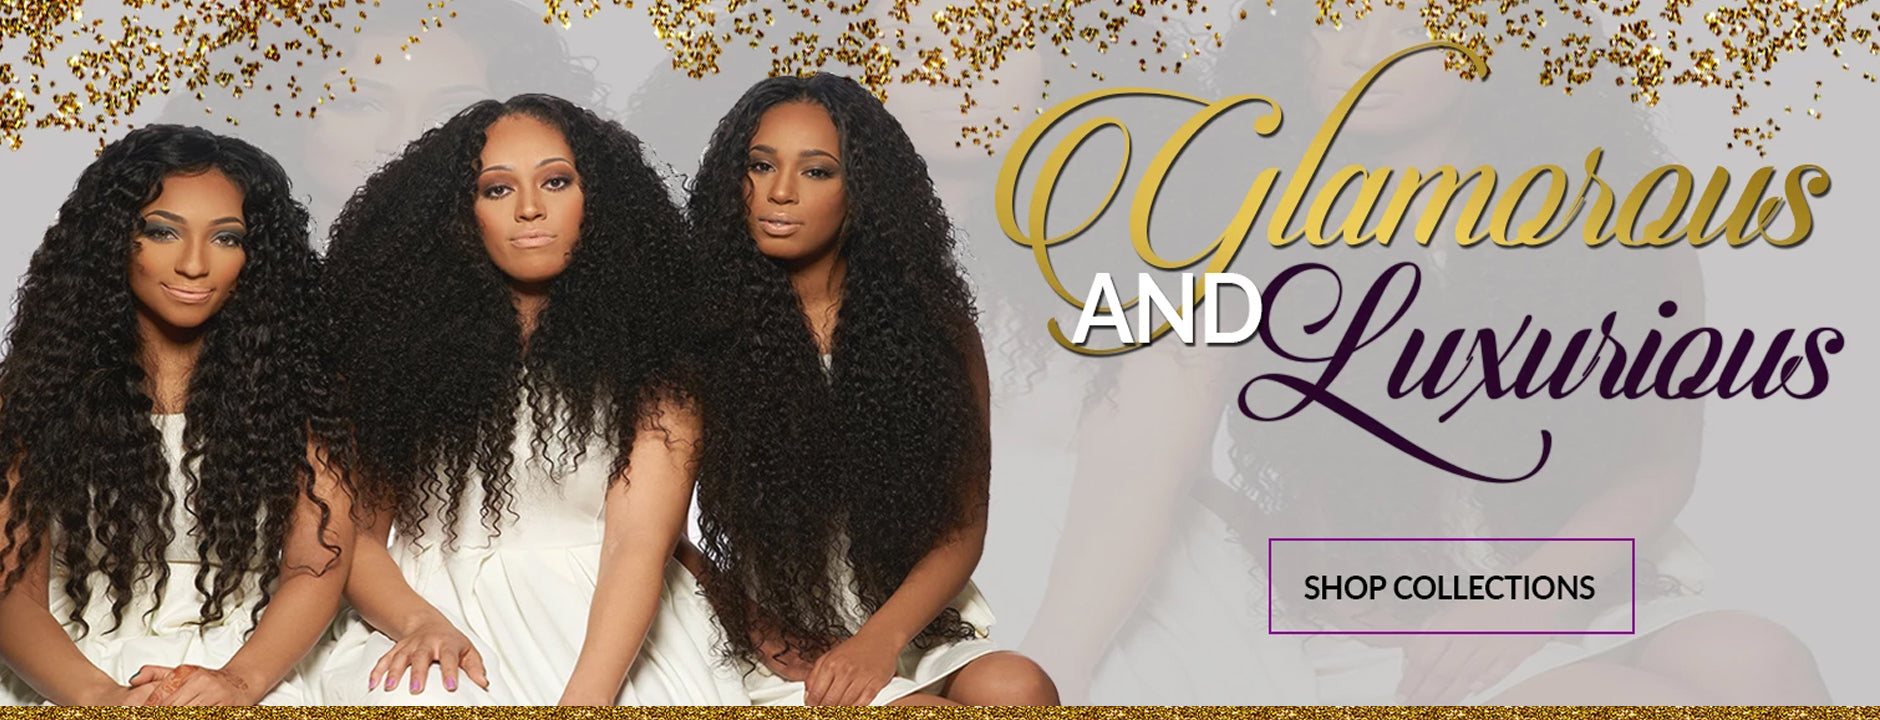 Quality virgin hair extensions, shop smart and blossom beautifully